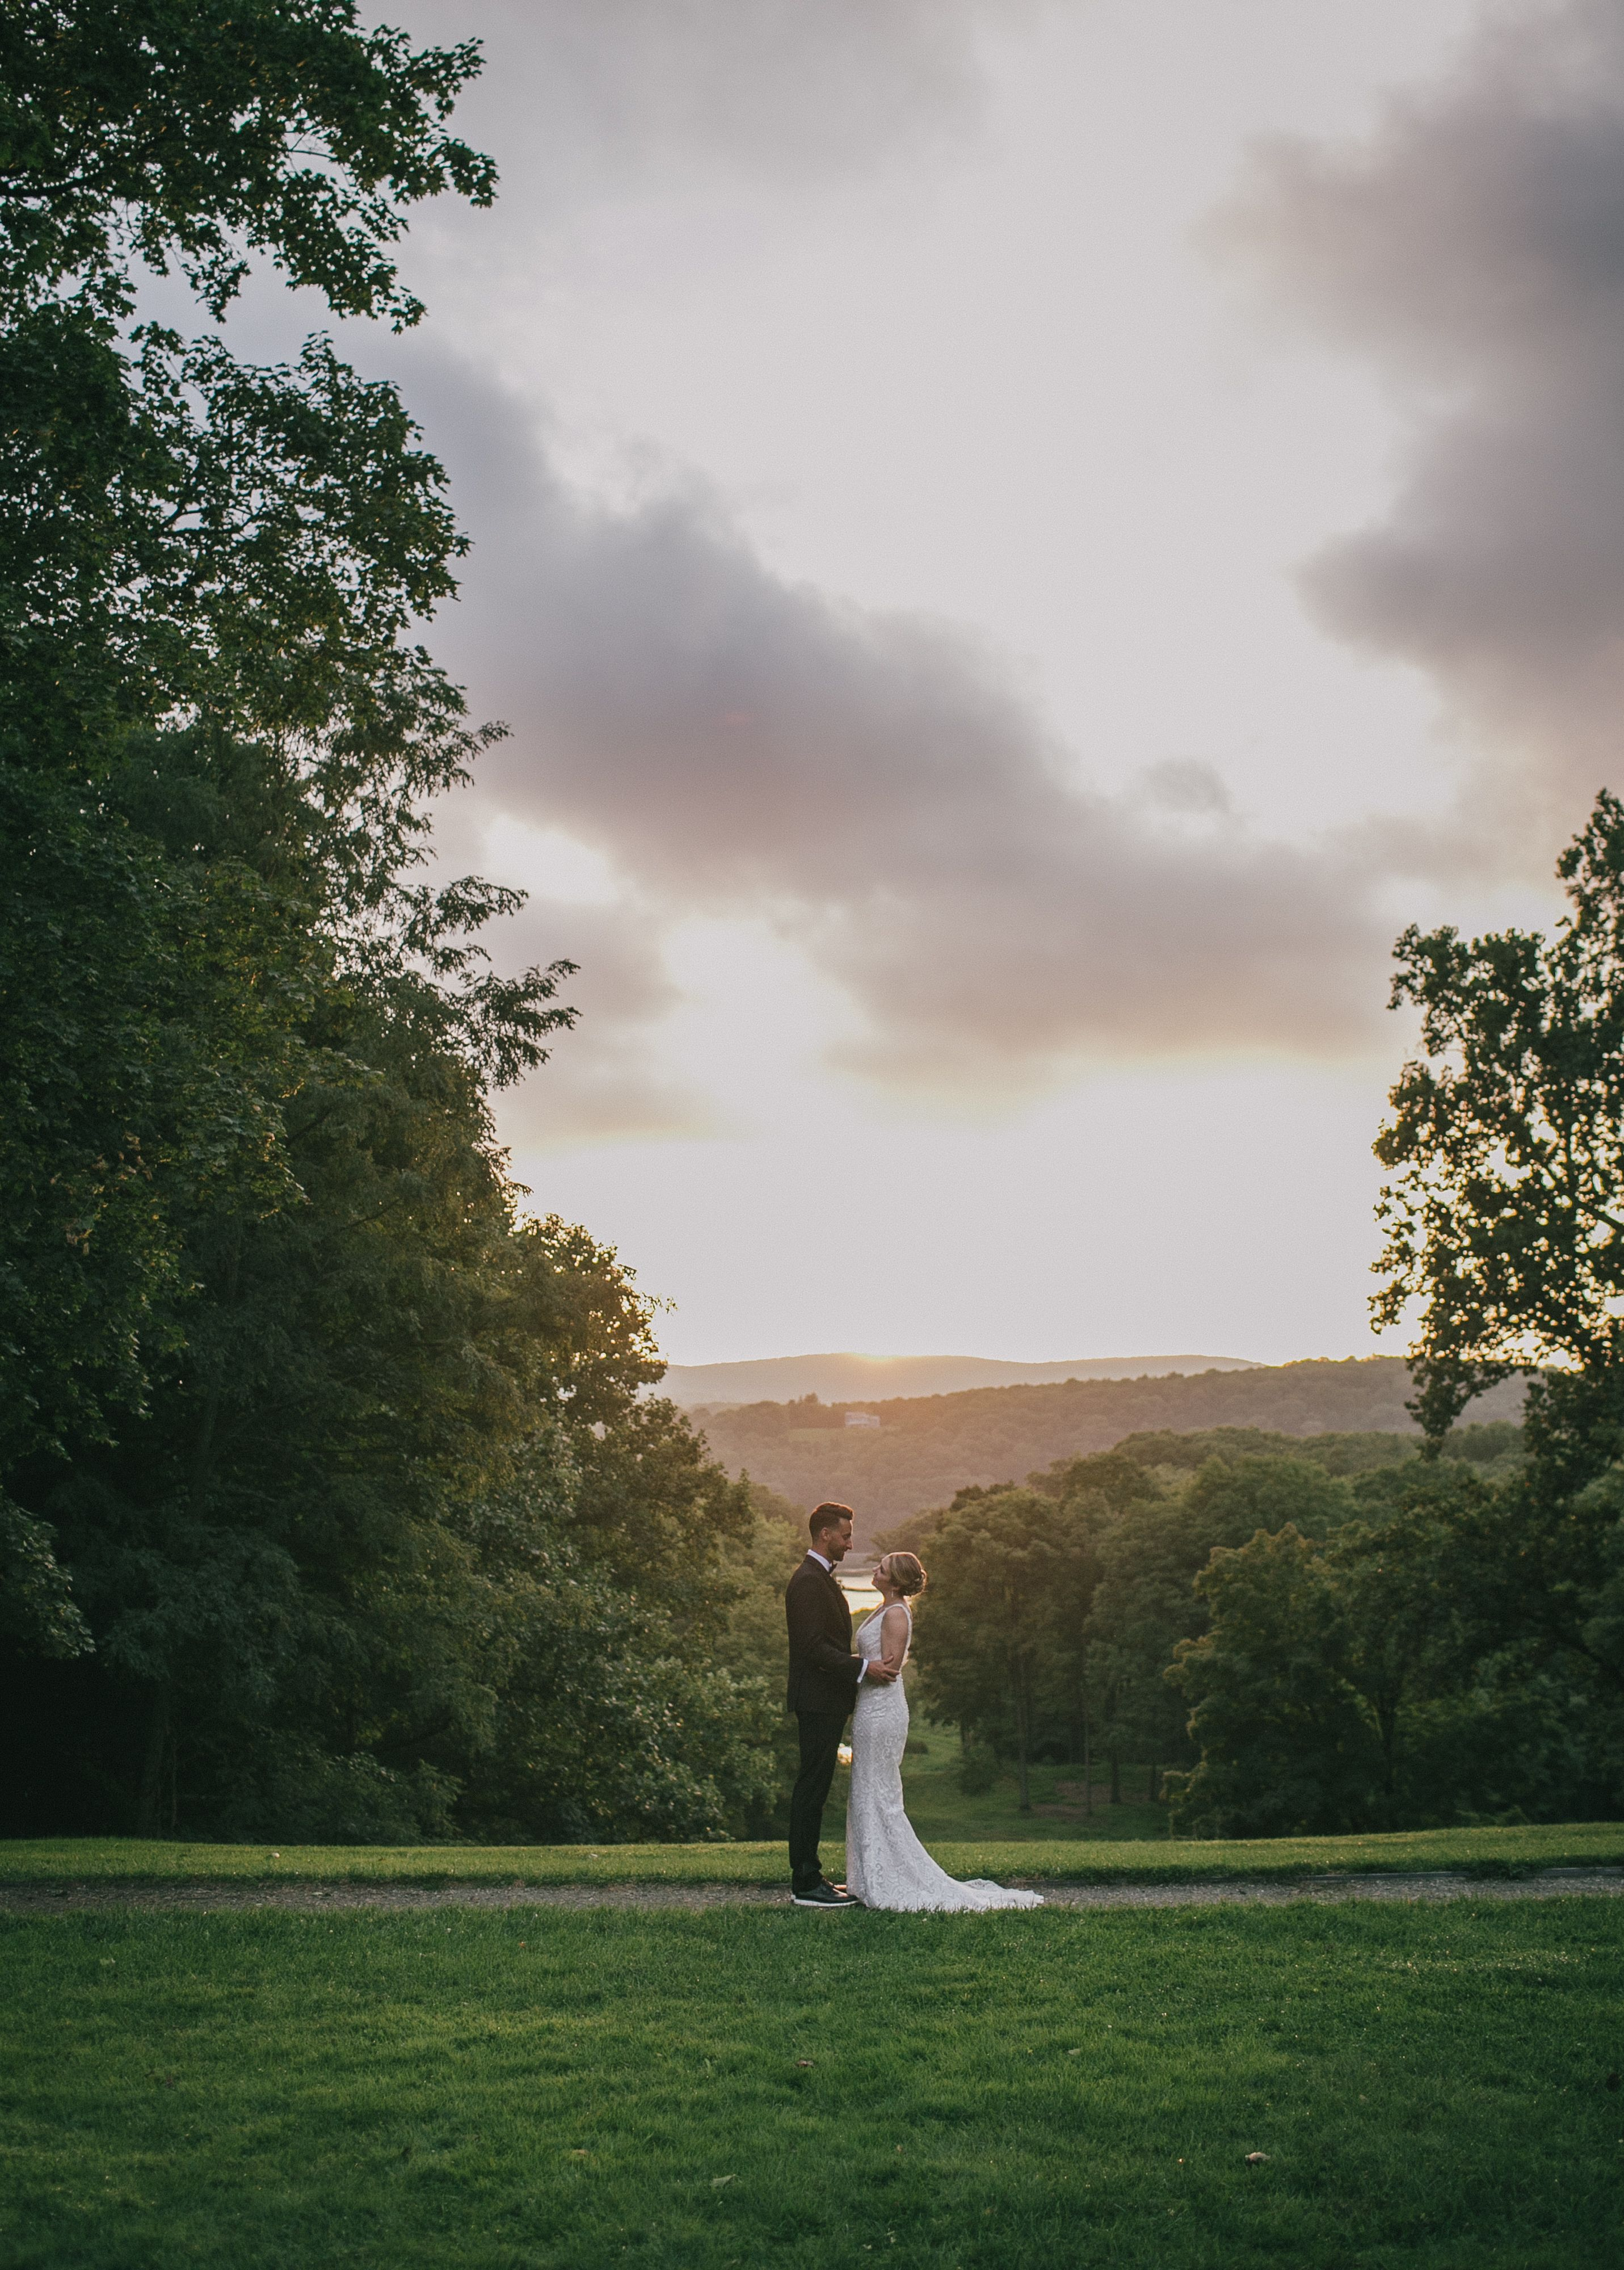 A wedding at Locust Grove in Poughkeepsie, NY | Hudson ...